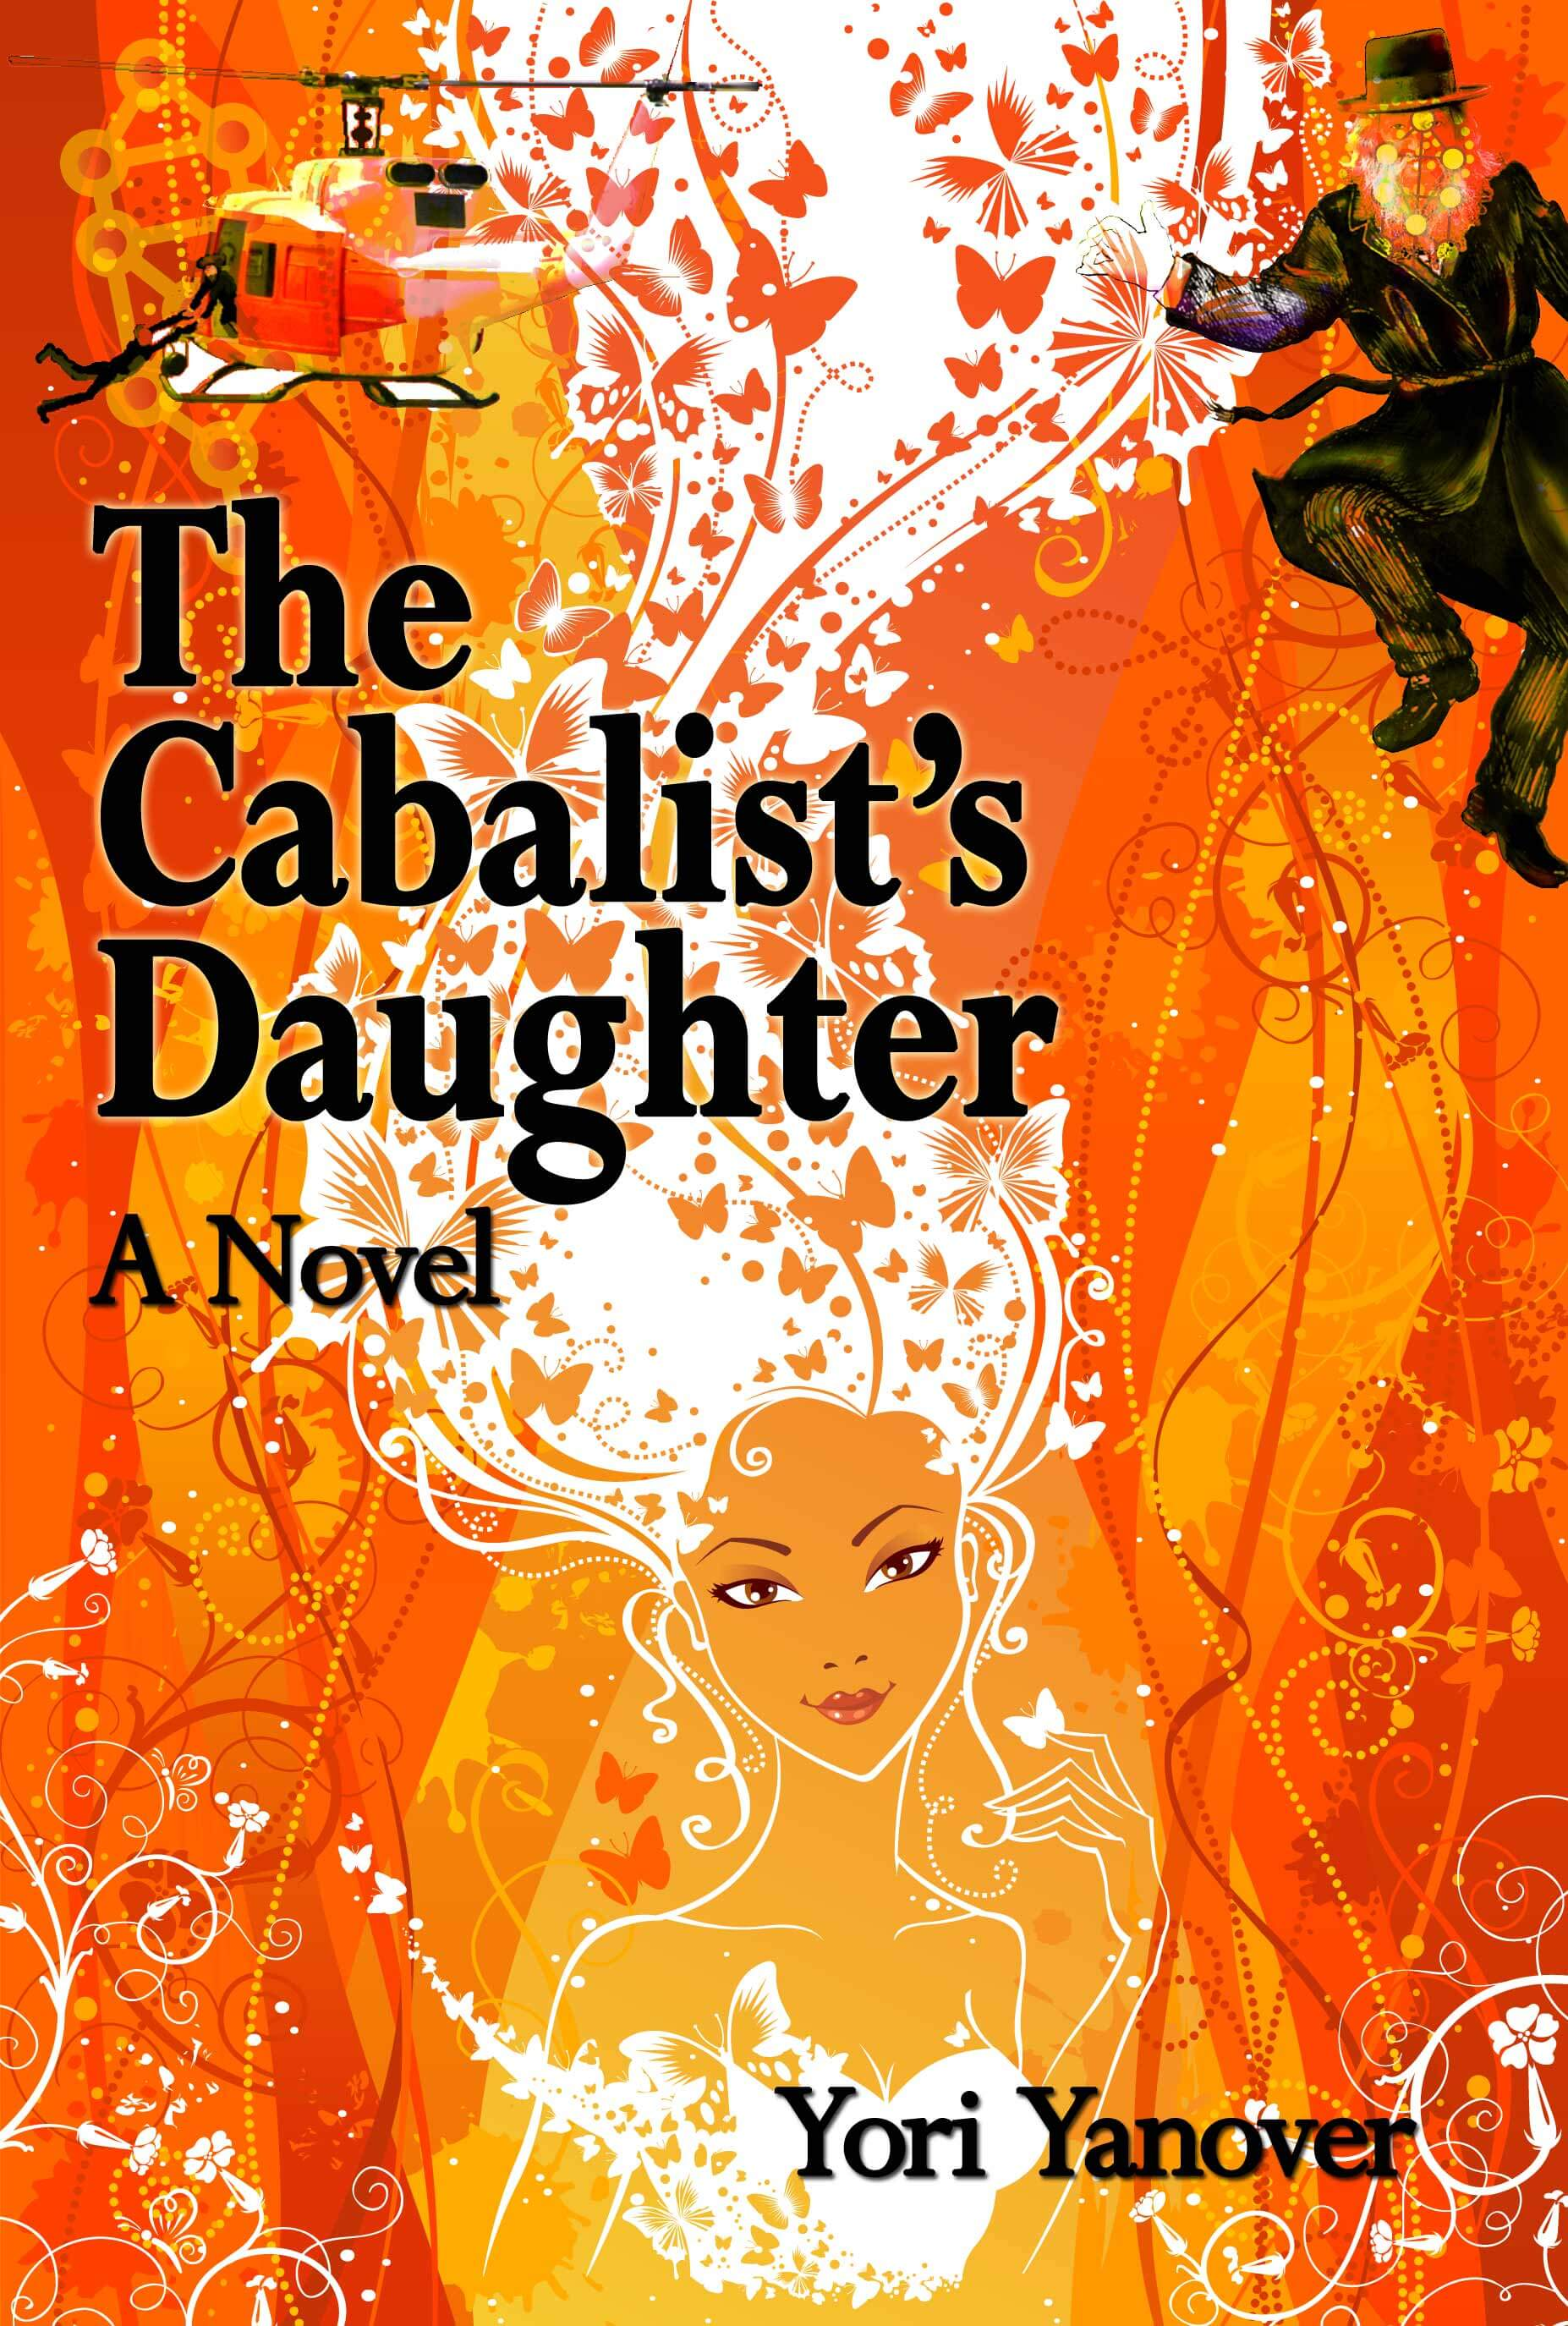 The Cabbalist's Daughter